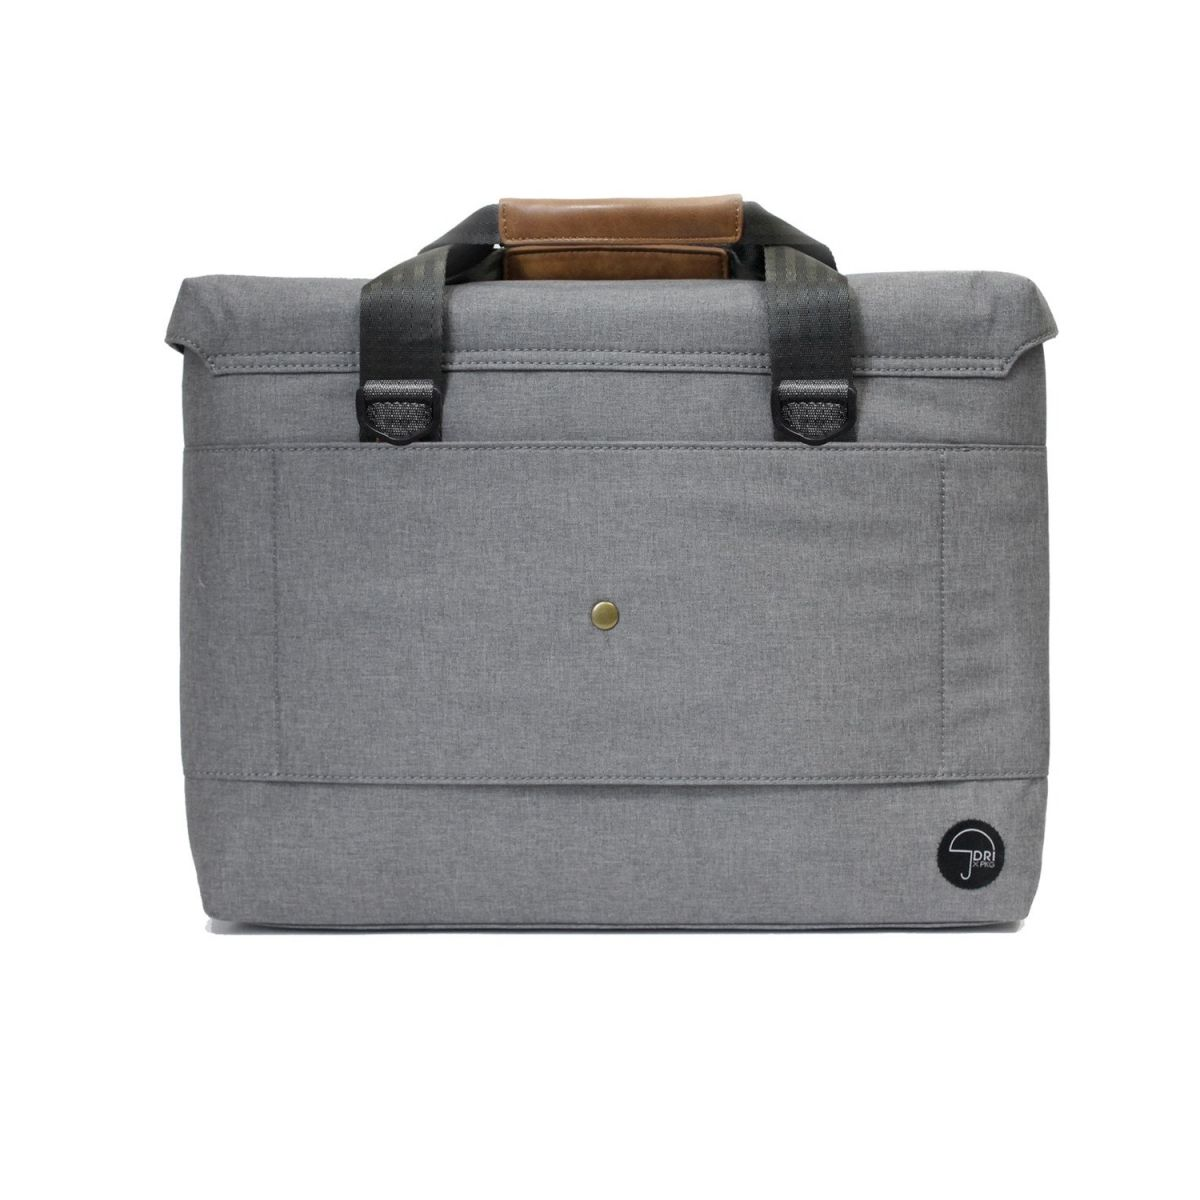 PKG Slim Brief - Light Grey